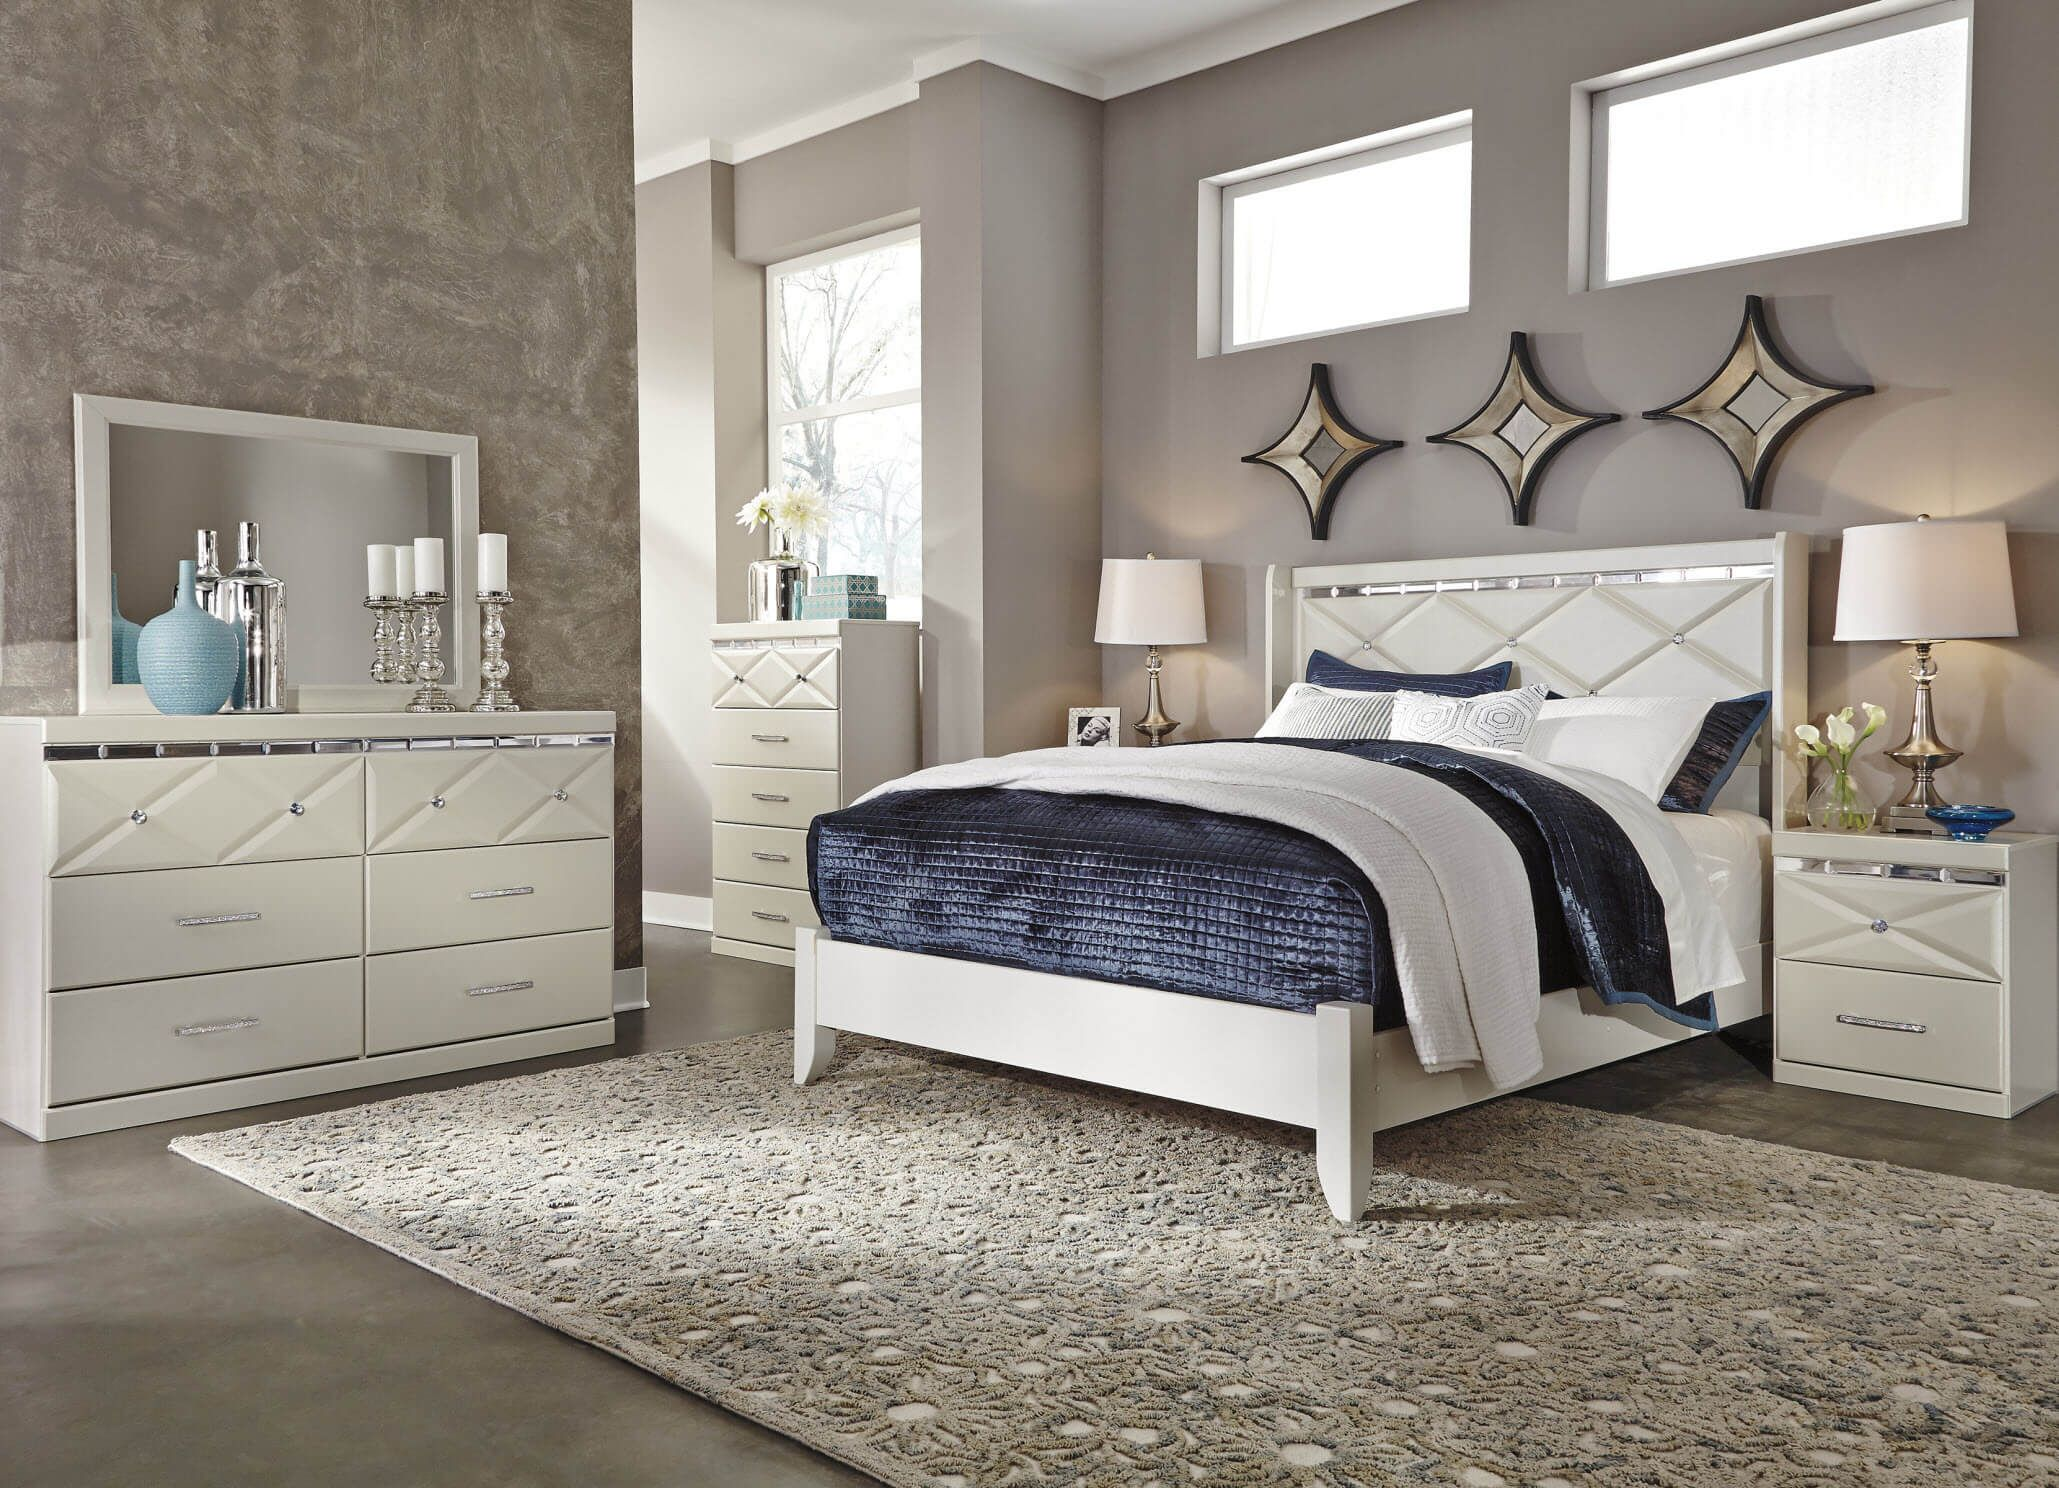 Ashley Dreamer Bedroom Set Bedroom Set Bedroom Sets Queen Ashley Furniture Bedroom